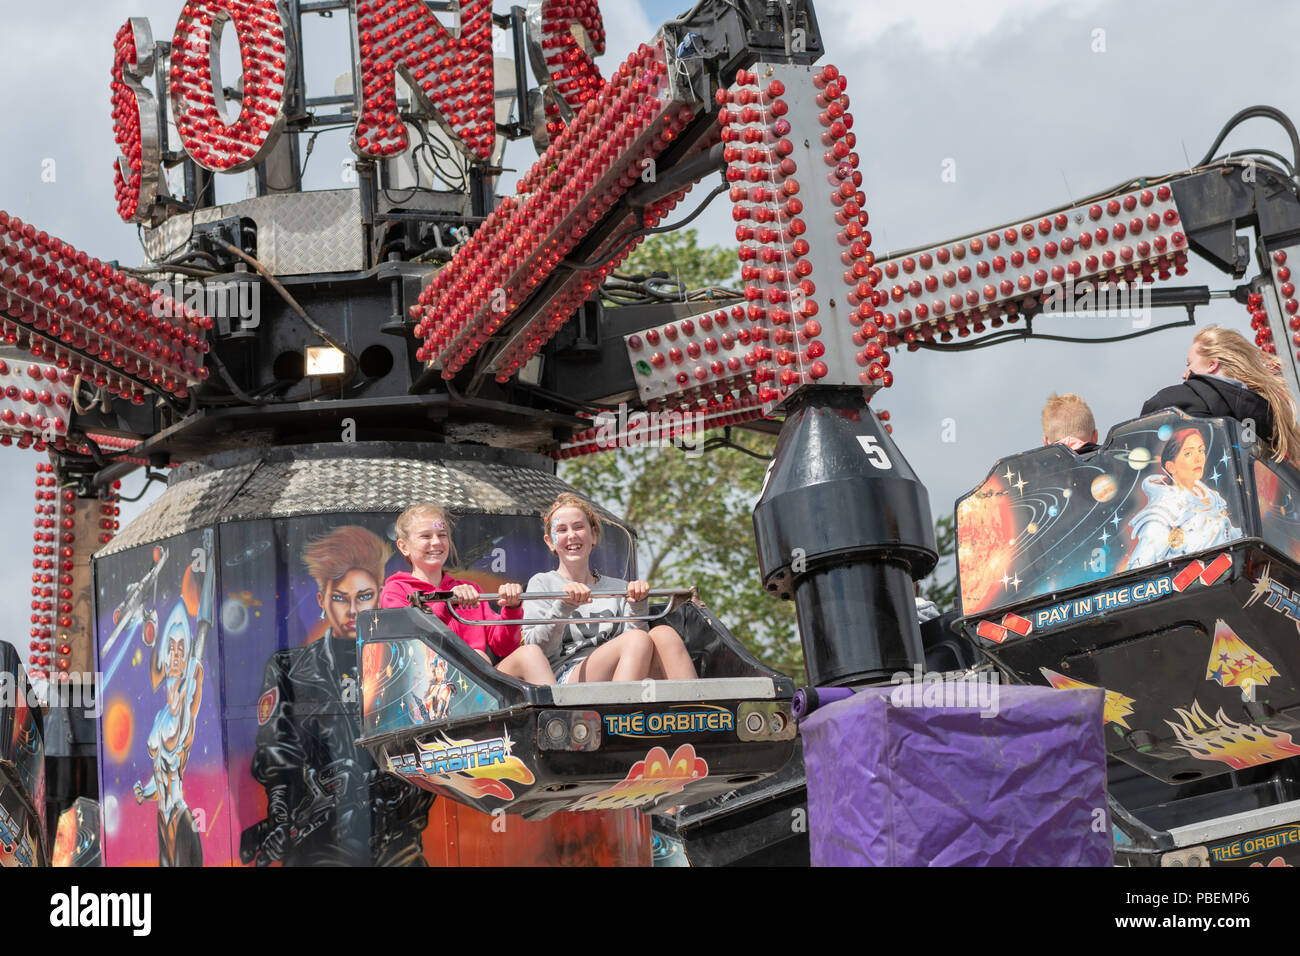 Poole, UK. 28th July 2018. People enjoy the rides, food stalls and live music at the Poole Harbour Festival in very windy weather. Credit: Thomas Faull/Alamy Live News Stock Photo